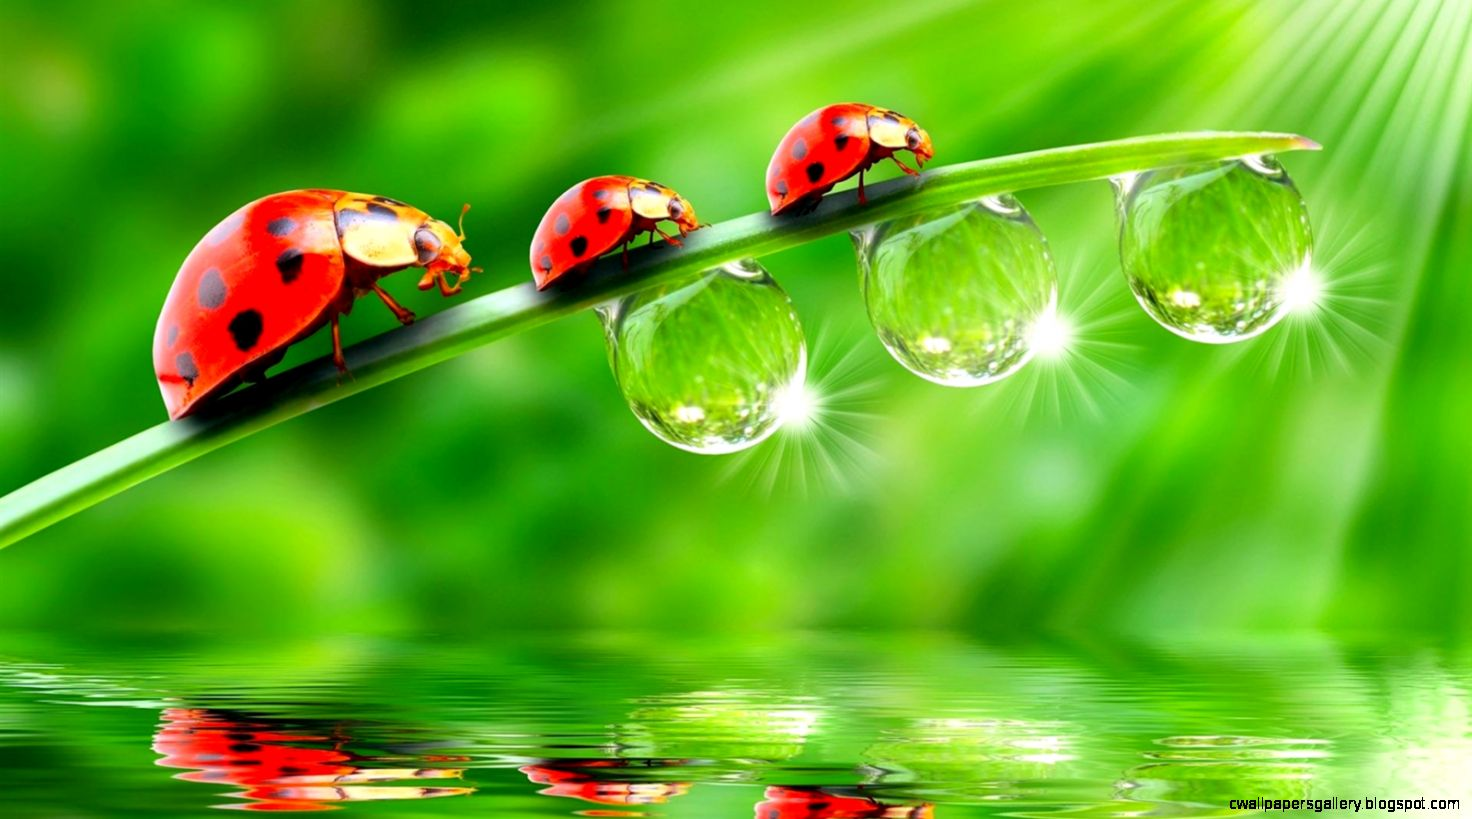 Three ladybugs on green leaves drops of water Wallpaper